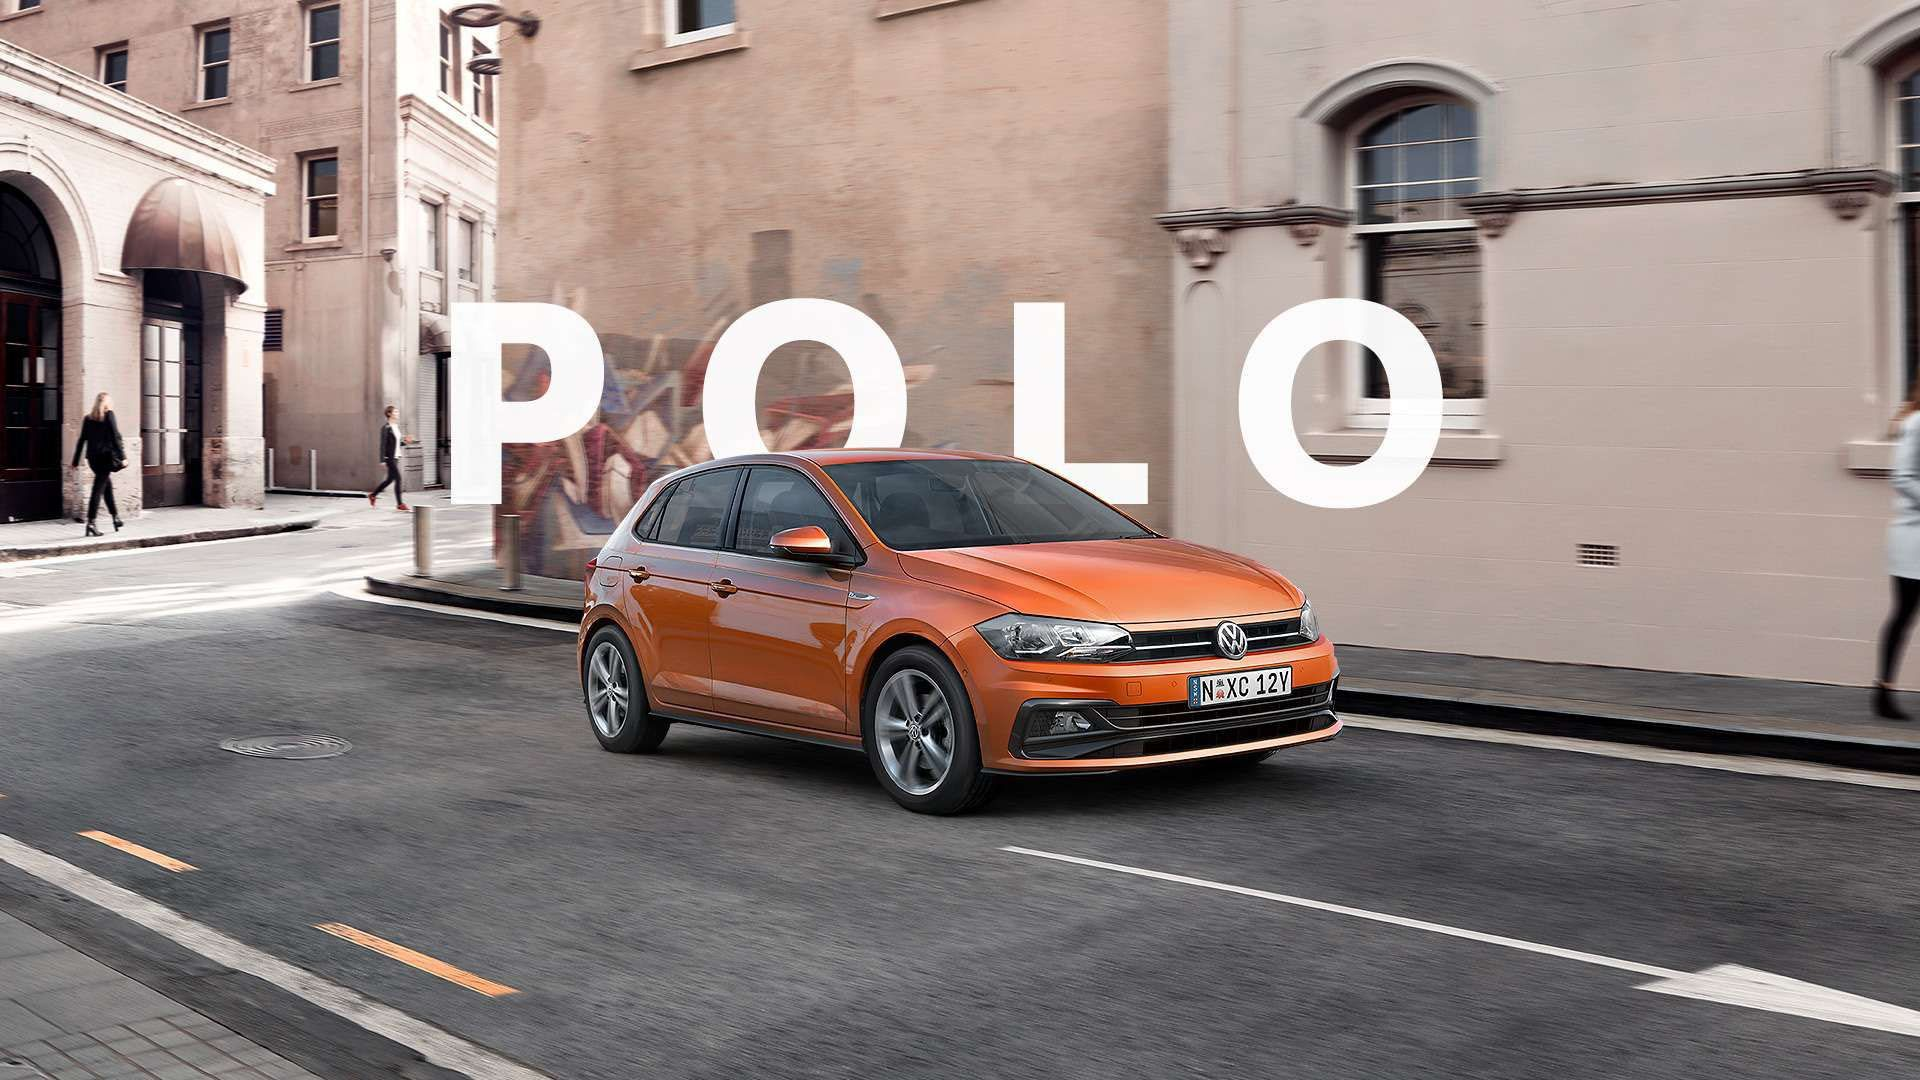 Energetic orange metallic Polo driving through street.